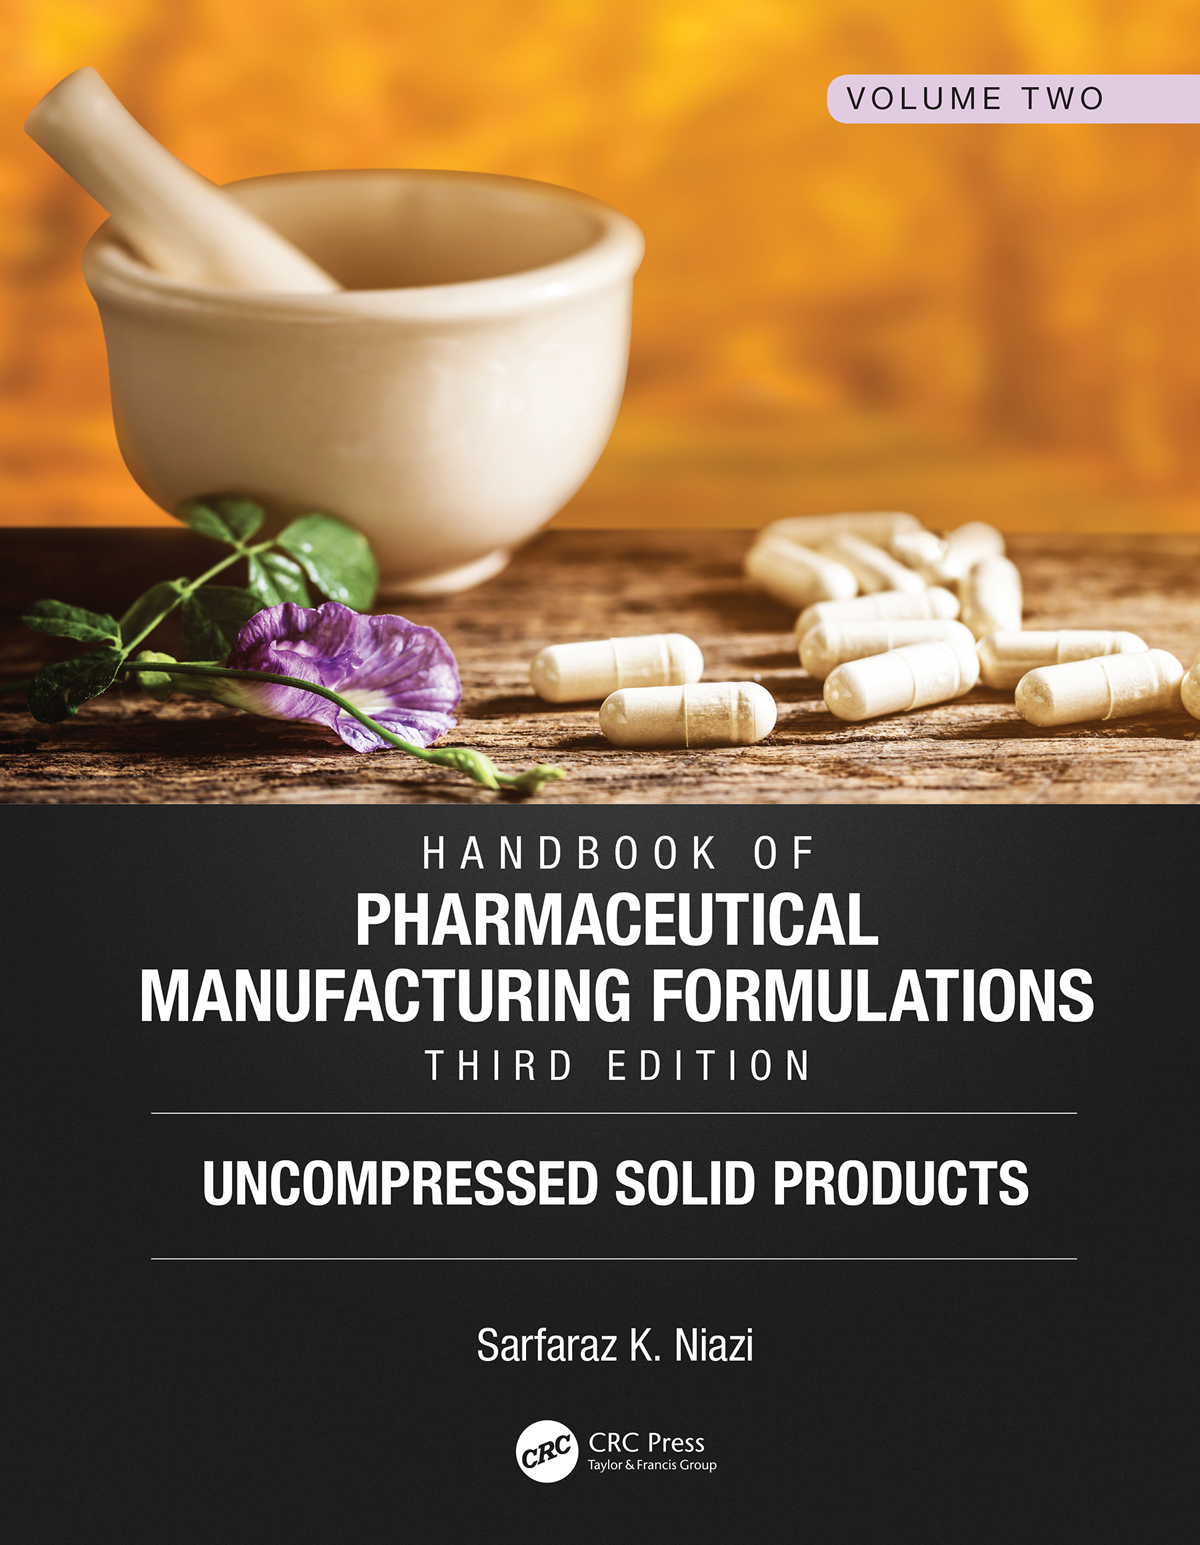 Handbook of Pharmaceutical Manufacturing Formulations, Third Edition: Volume Two, Uncompressed Solid Products book cover